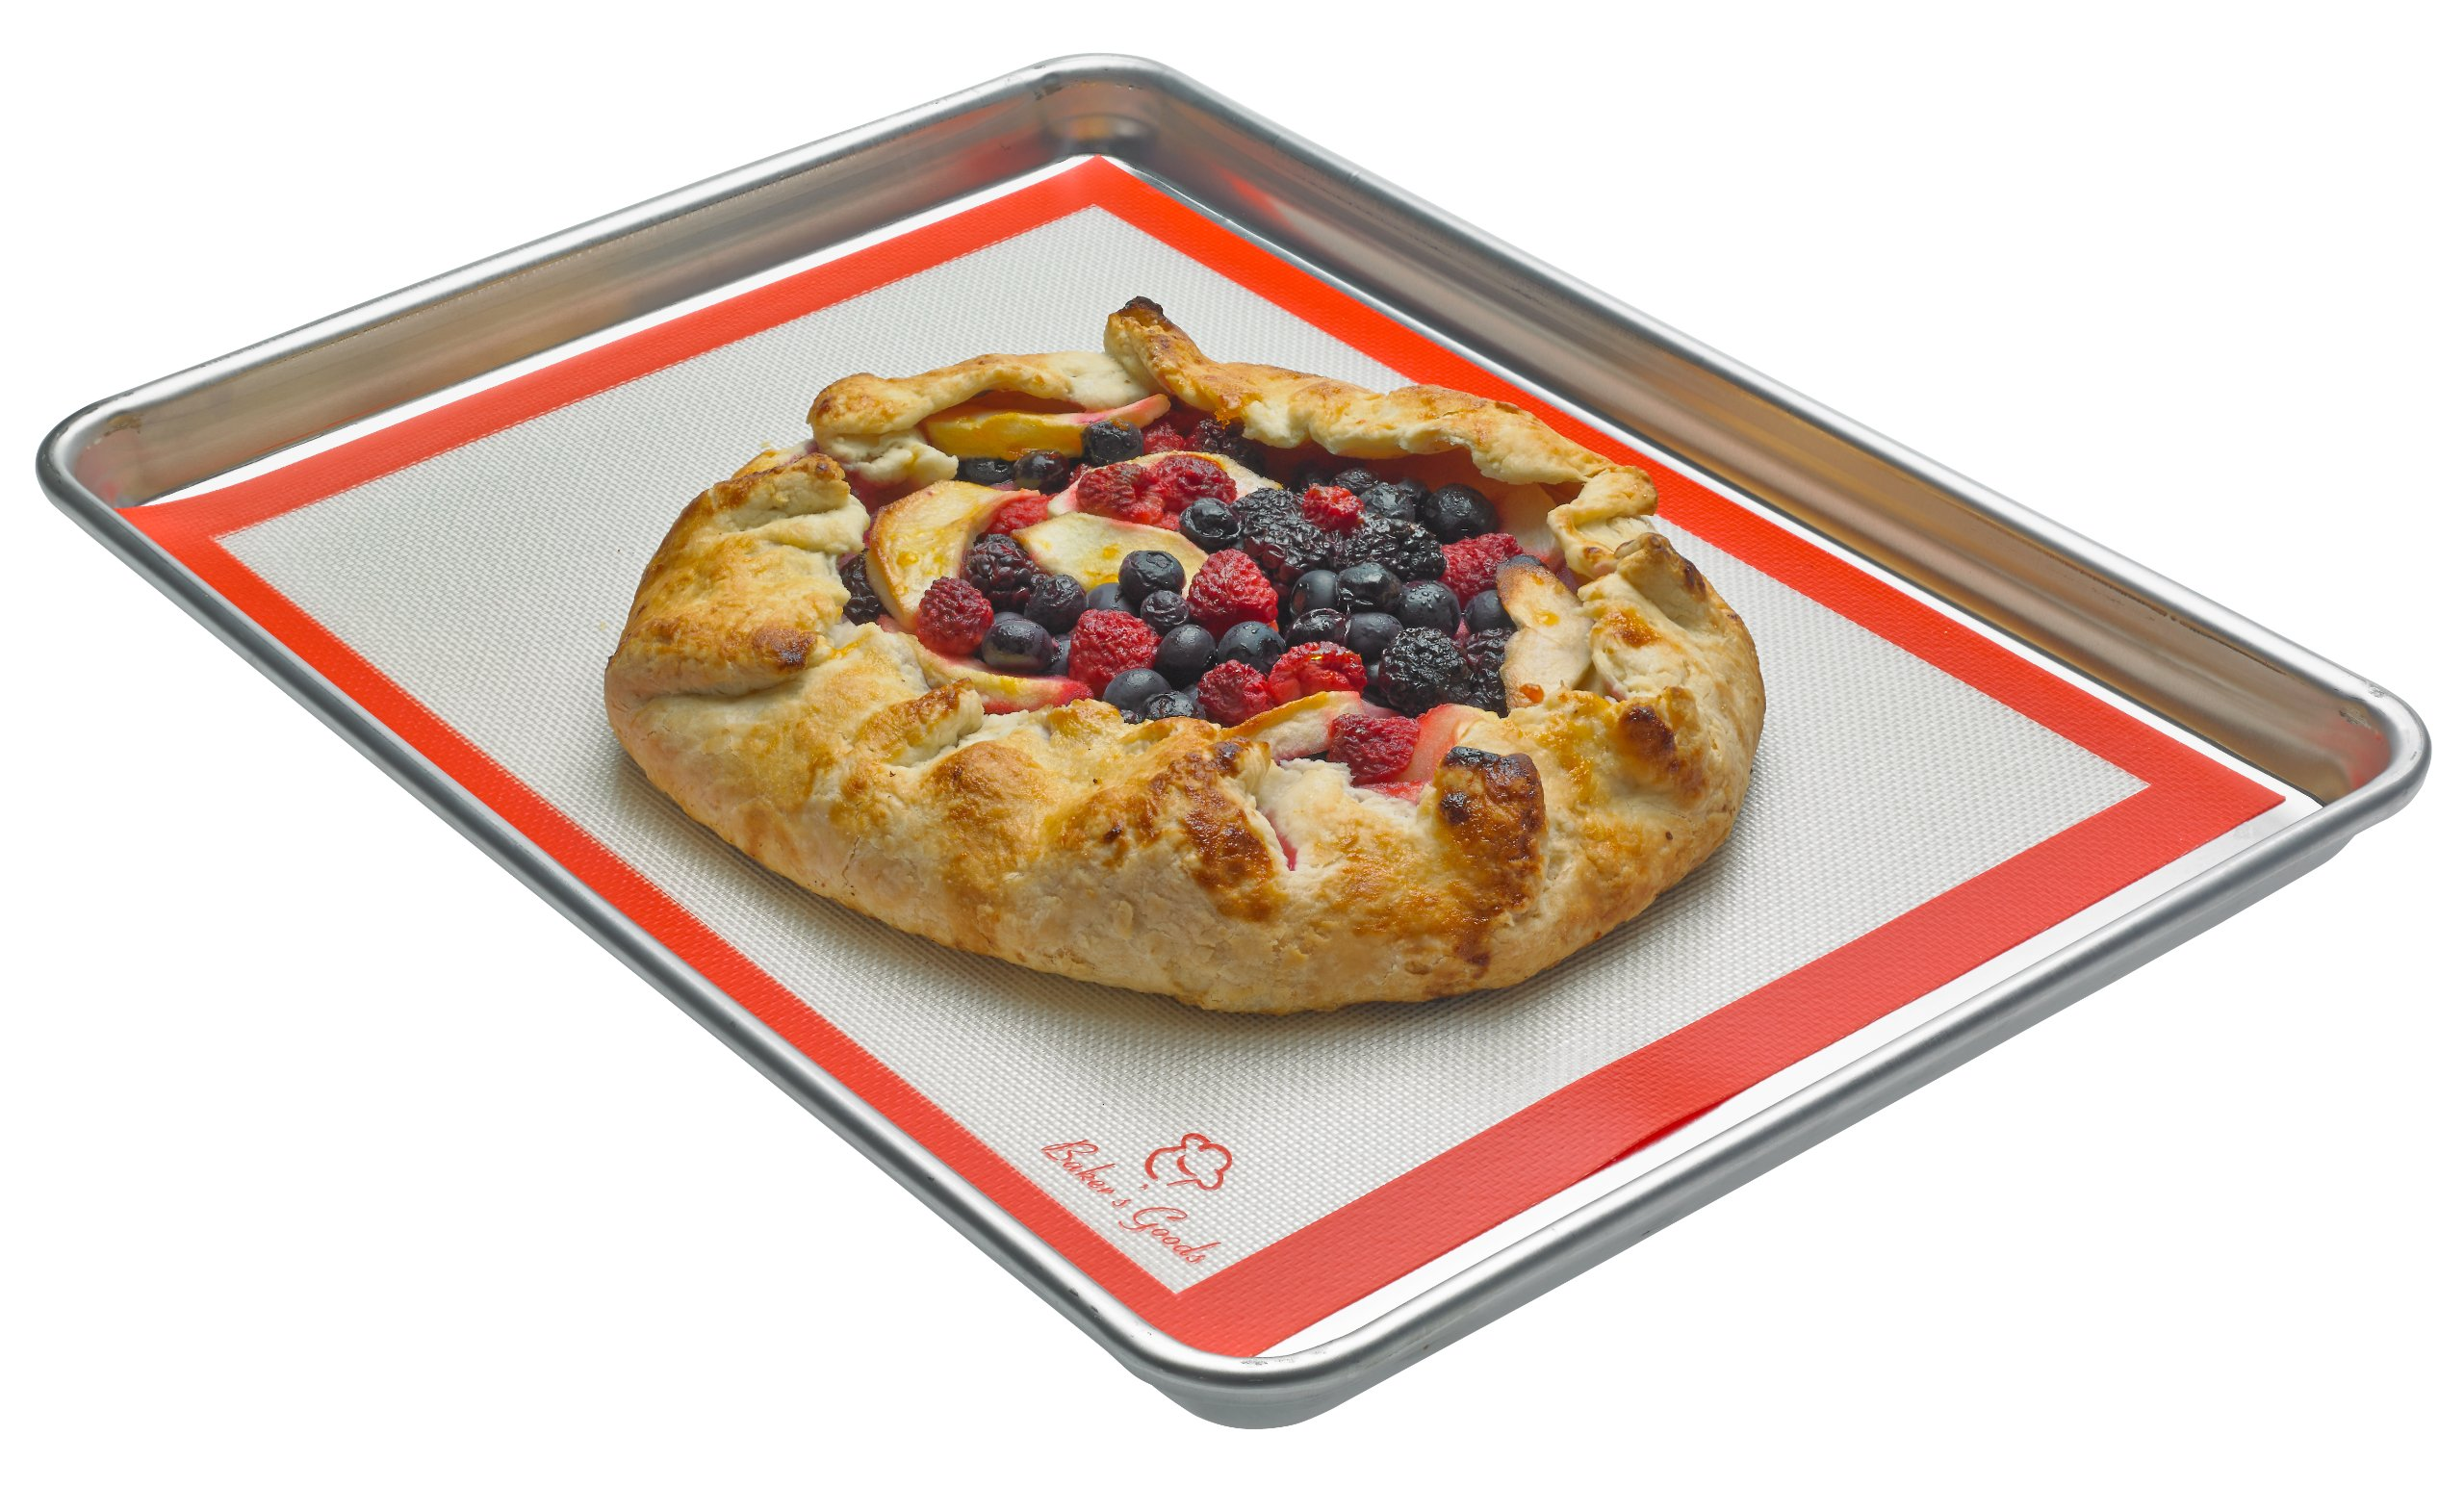 Baker's Goods Non-stick Professional Silicone Baking Mat, 8.5 x 11.5-inches